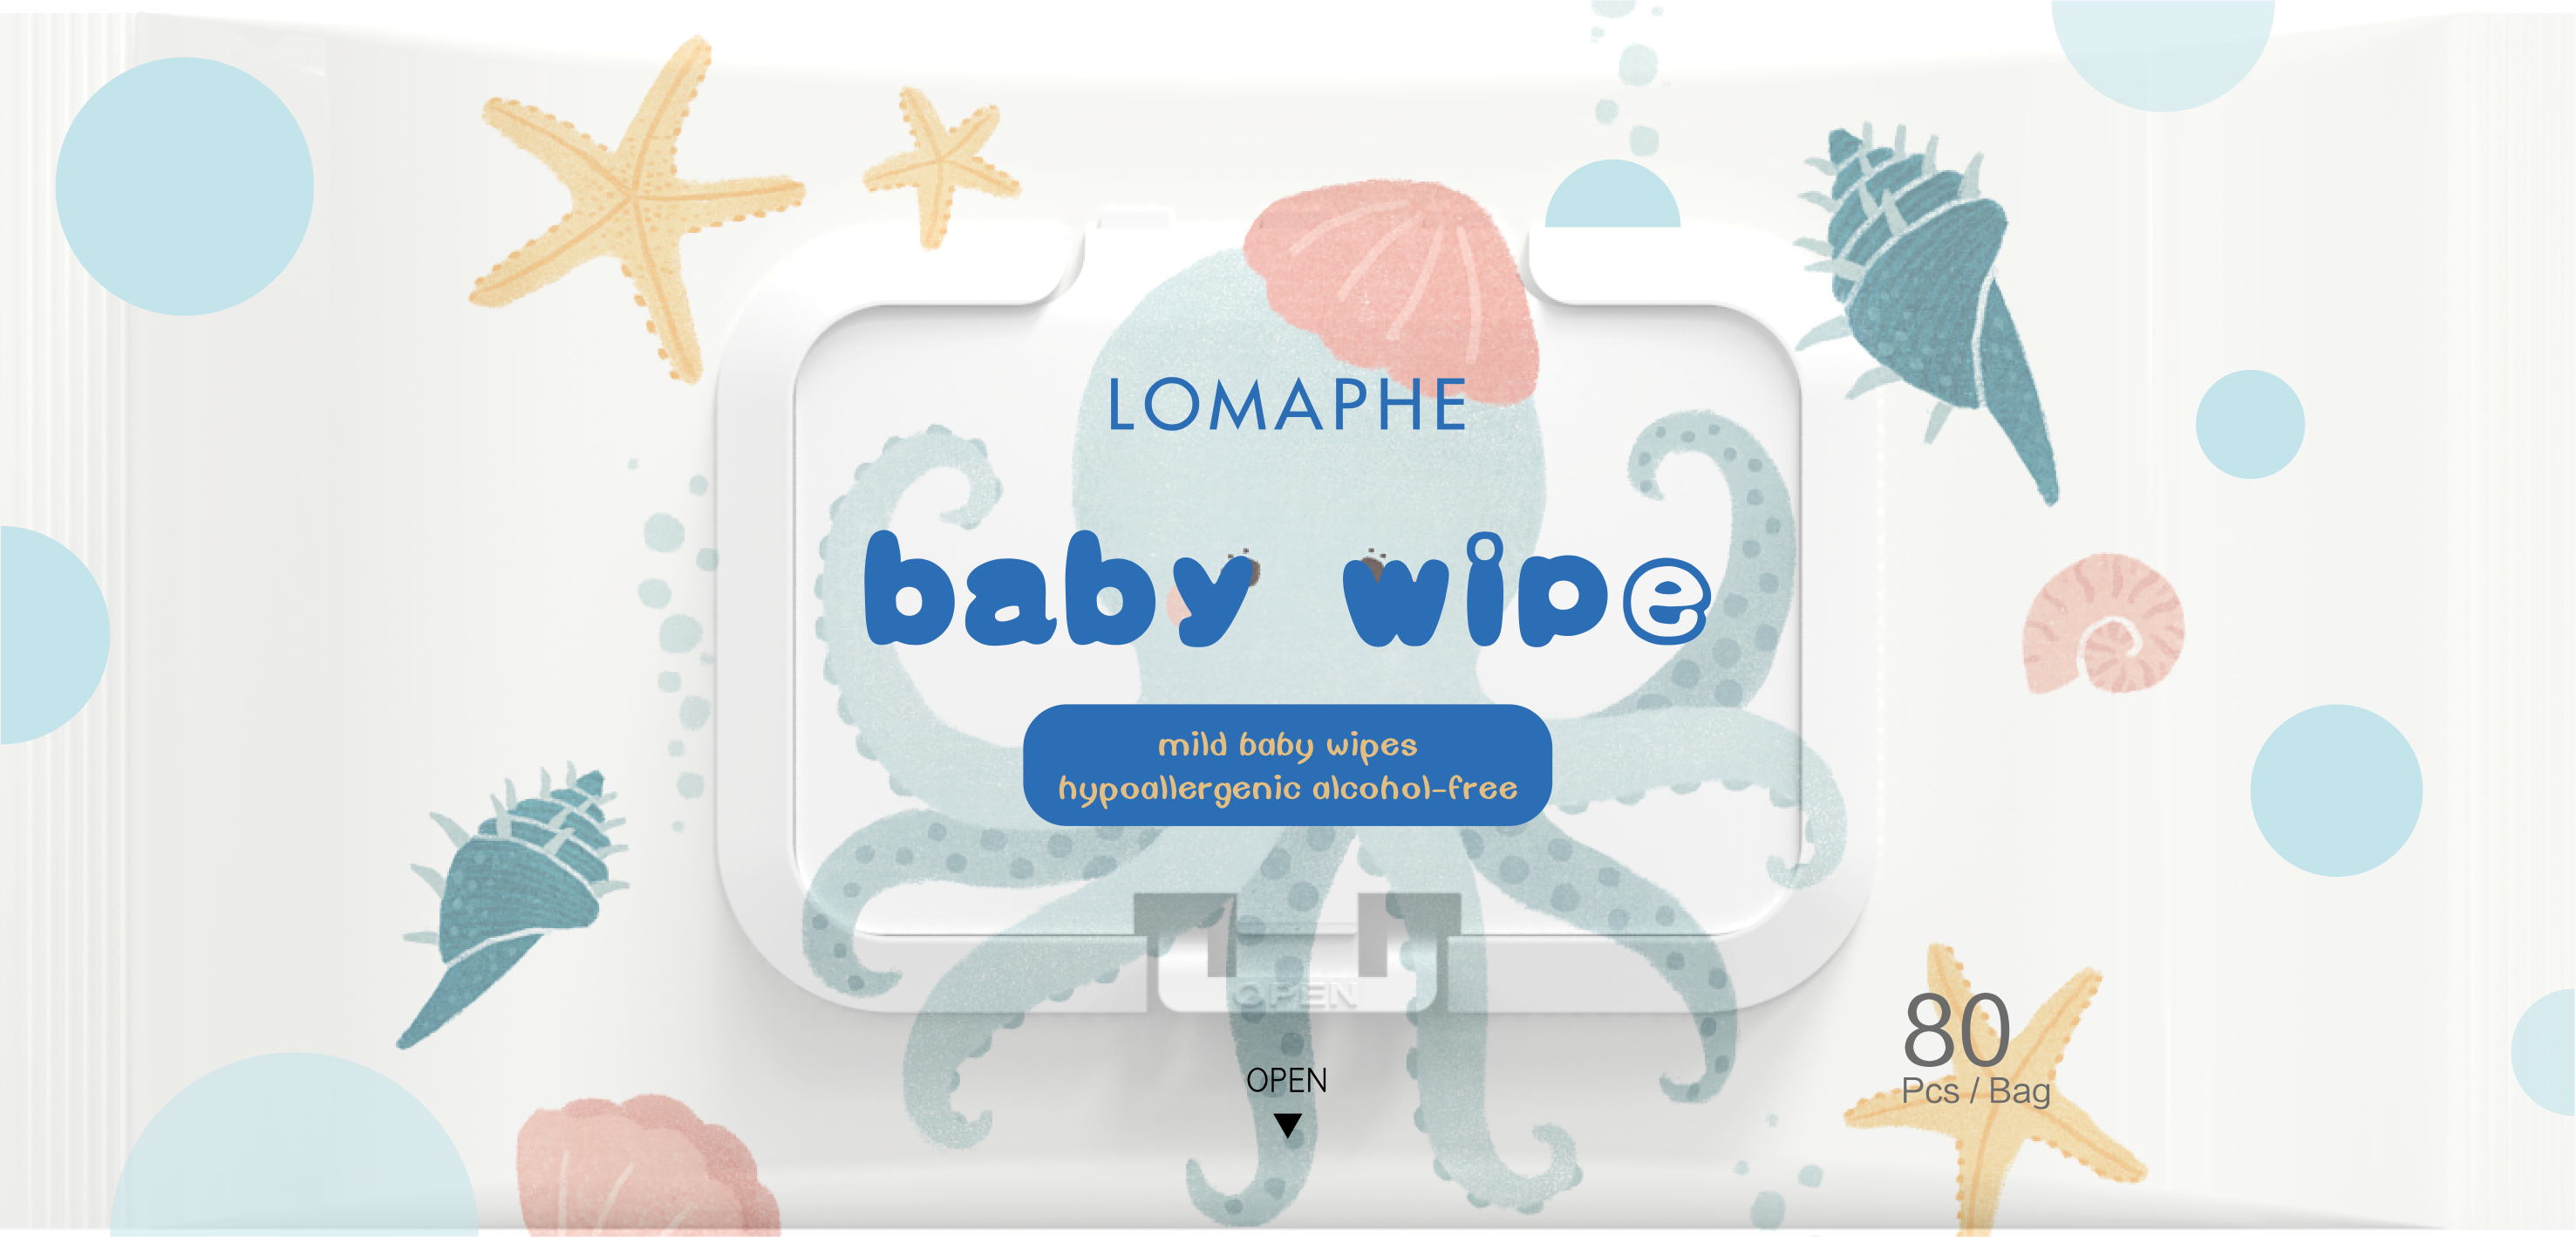 Better baby wipes,Better baby wipes manufacturers